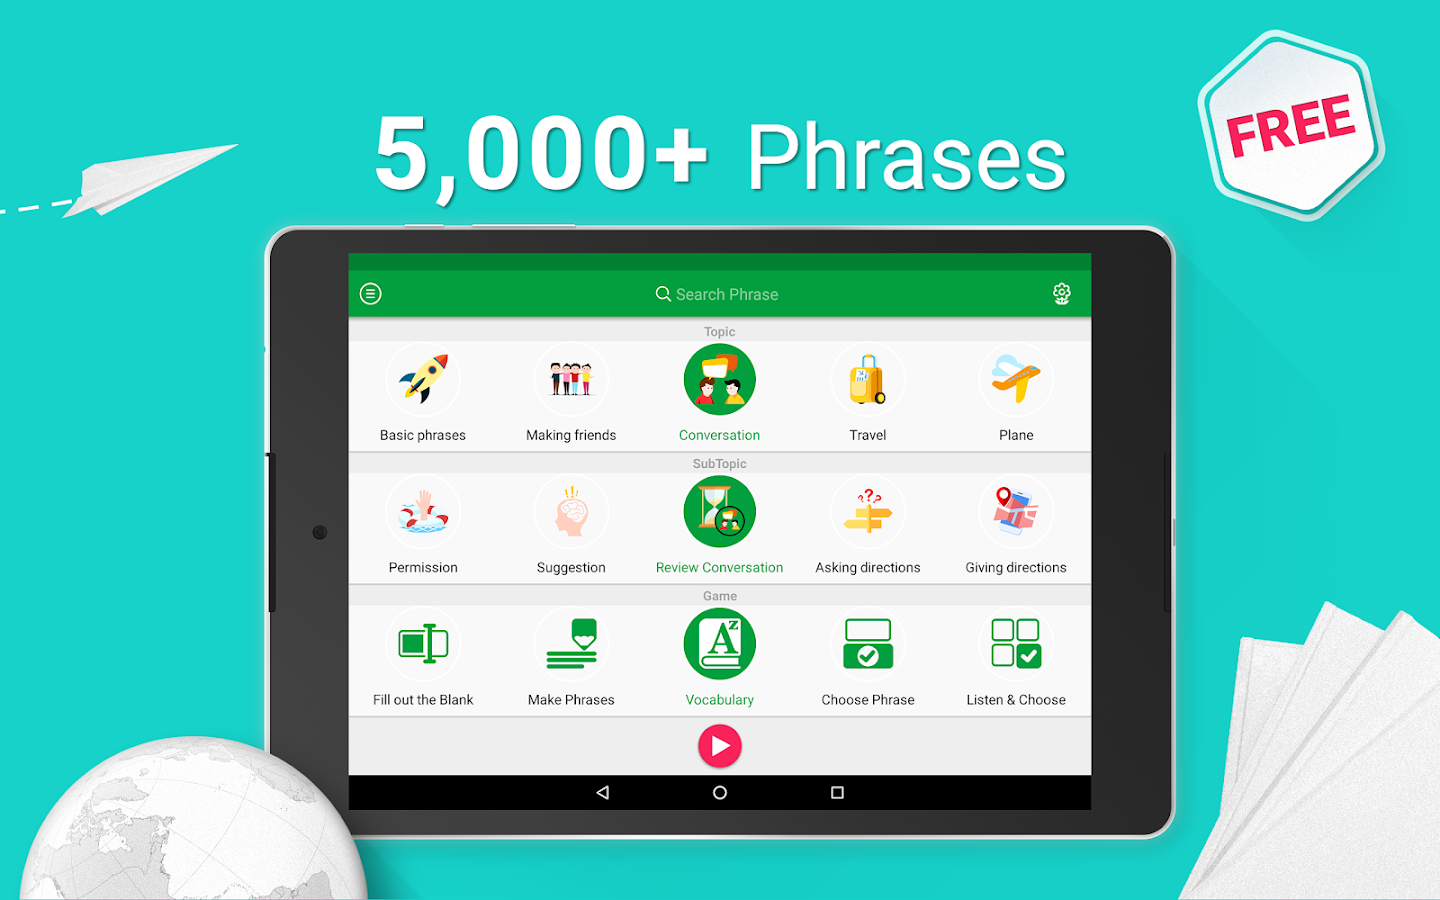 Learn Swedish - 5,000 Phrases Screenshot 8